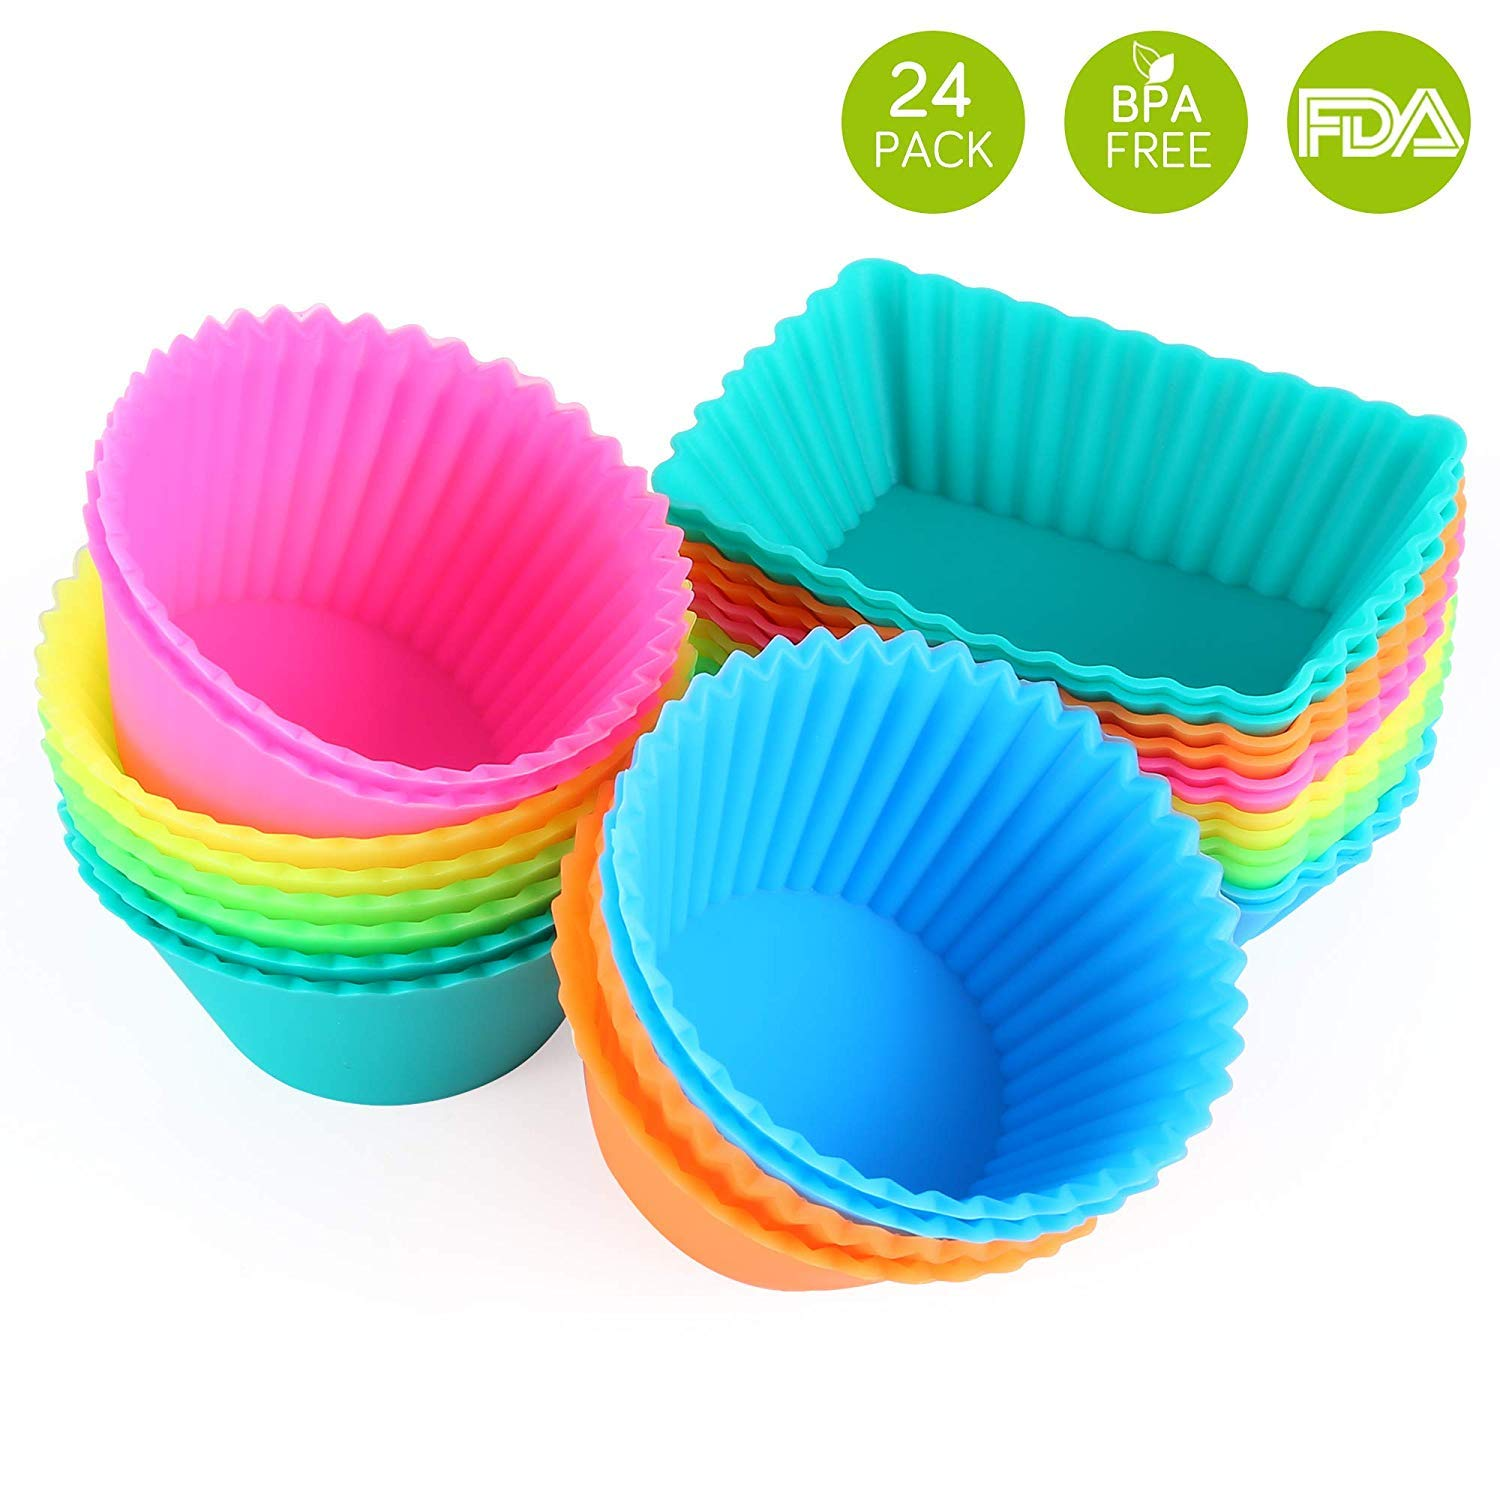 IPOW SC01 Silicone Cupcake Baking Cups Reusable Food-Grade BPA Free Non-Stick Muffin Liners Molds, Standard, Multi-color by IPOW